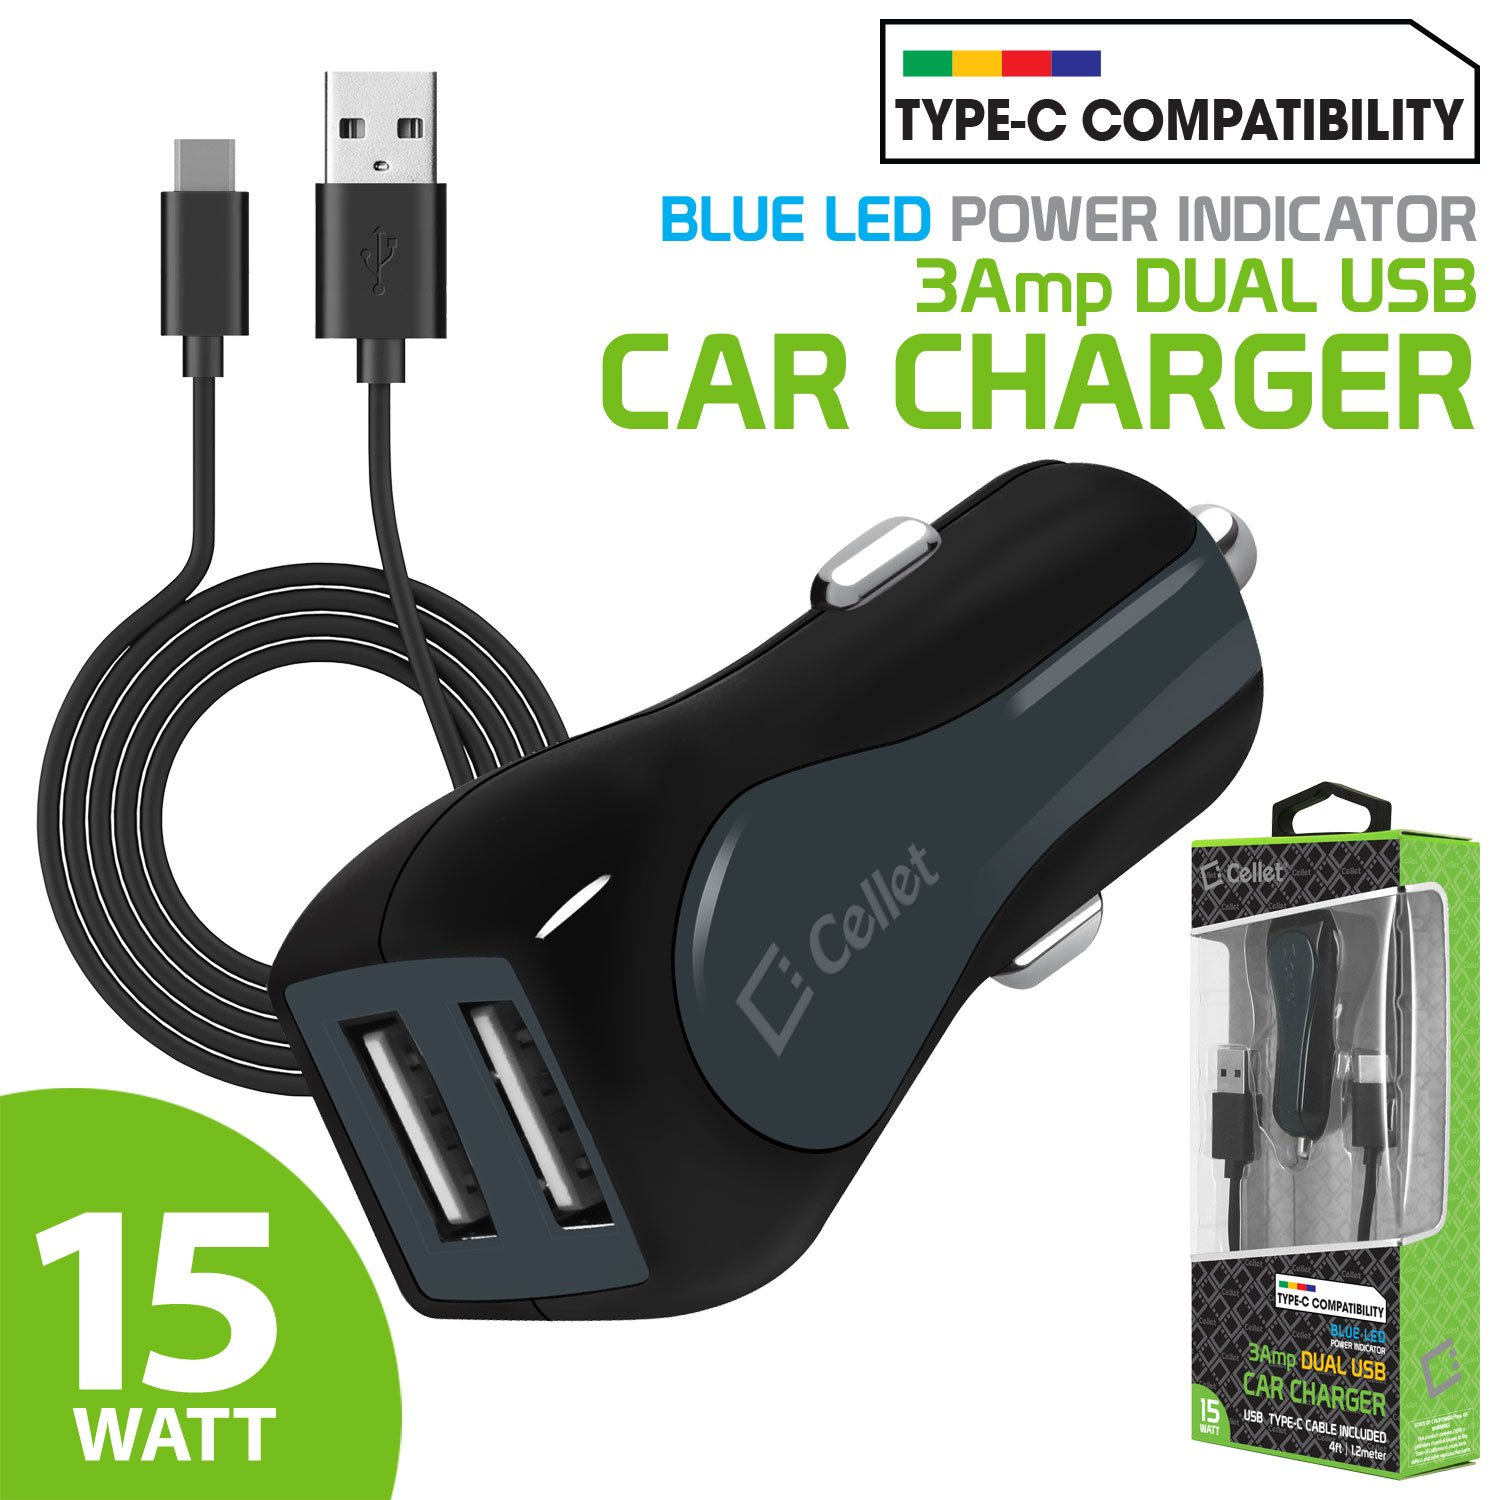 S8 Cellet High Powered 3Amp S8 Active 4351585207 Fast Charging 15 Watt Compatible for Samsung Galaxy Note 9,8 and Galaxy S9 S8 Plus Dual USB Port Vehicle Car Charger with 4ft Long Type-C Cable S9 Plus